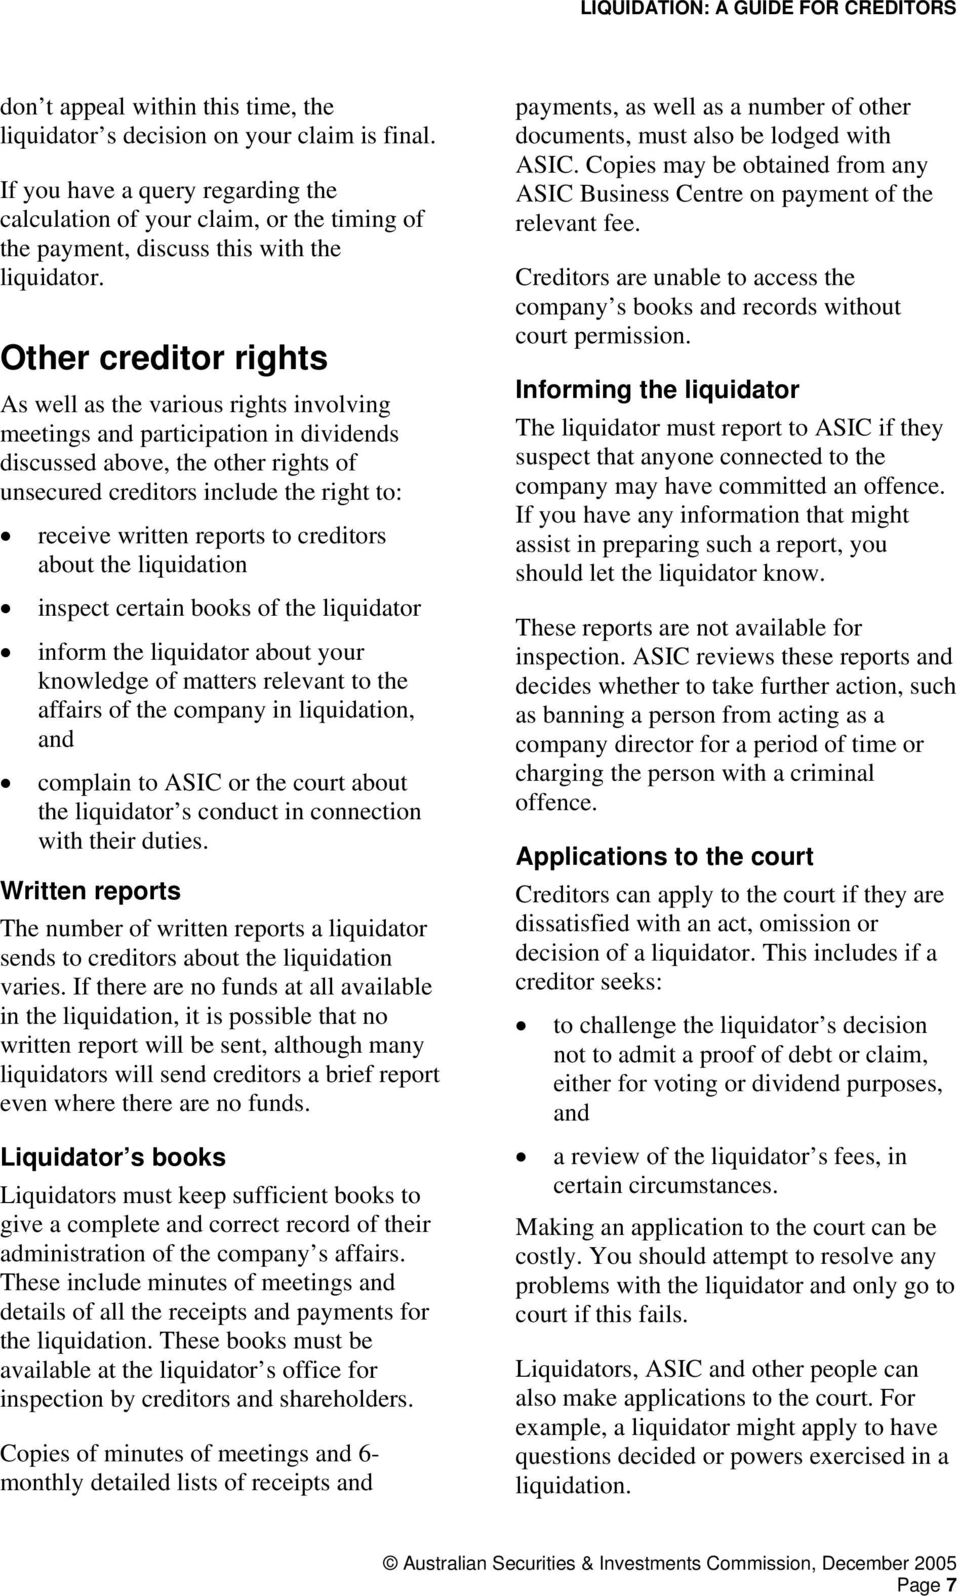 Other creditor rights As well as the various rights involving meetings and participation in dividends discussed above, the other rights of unsecured creditors include the right to: receive written